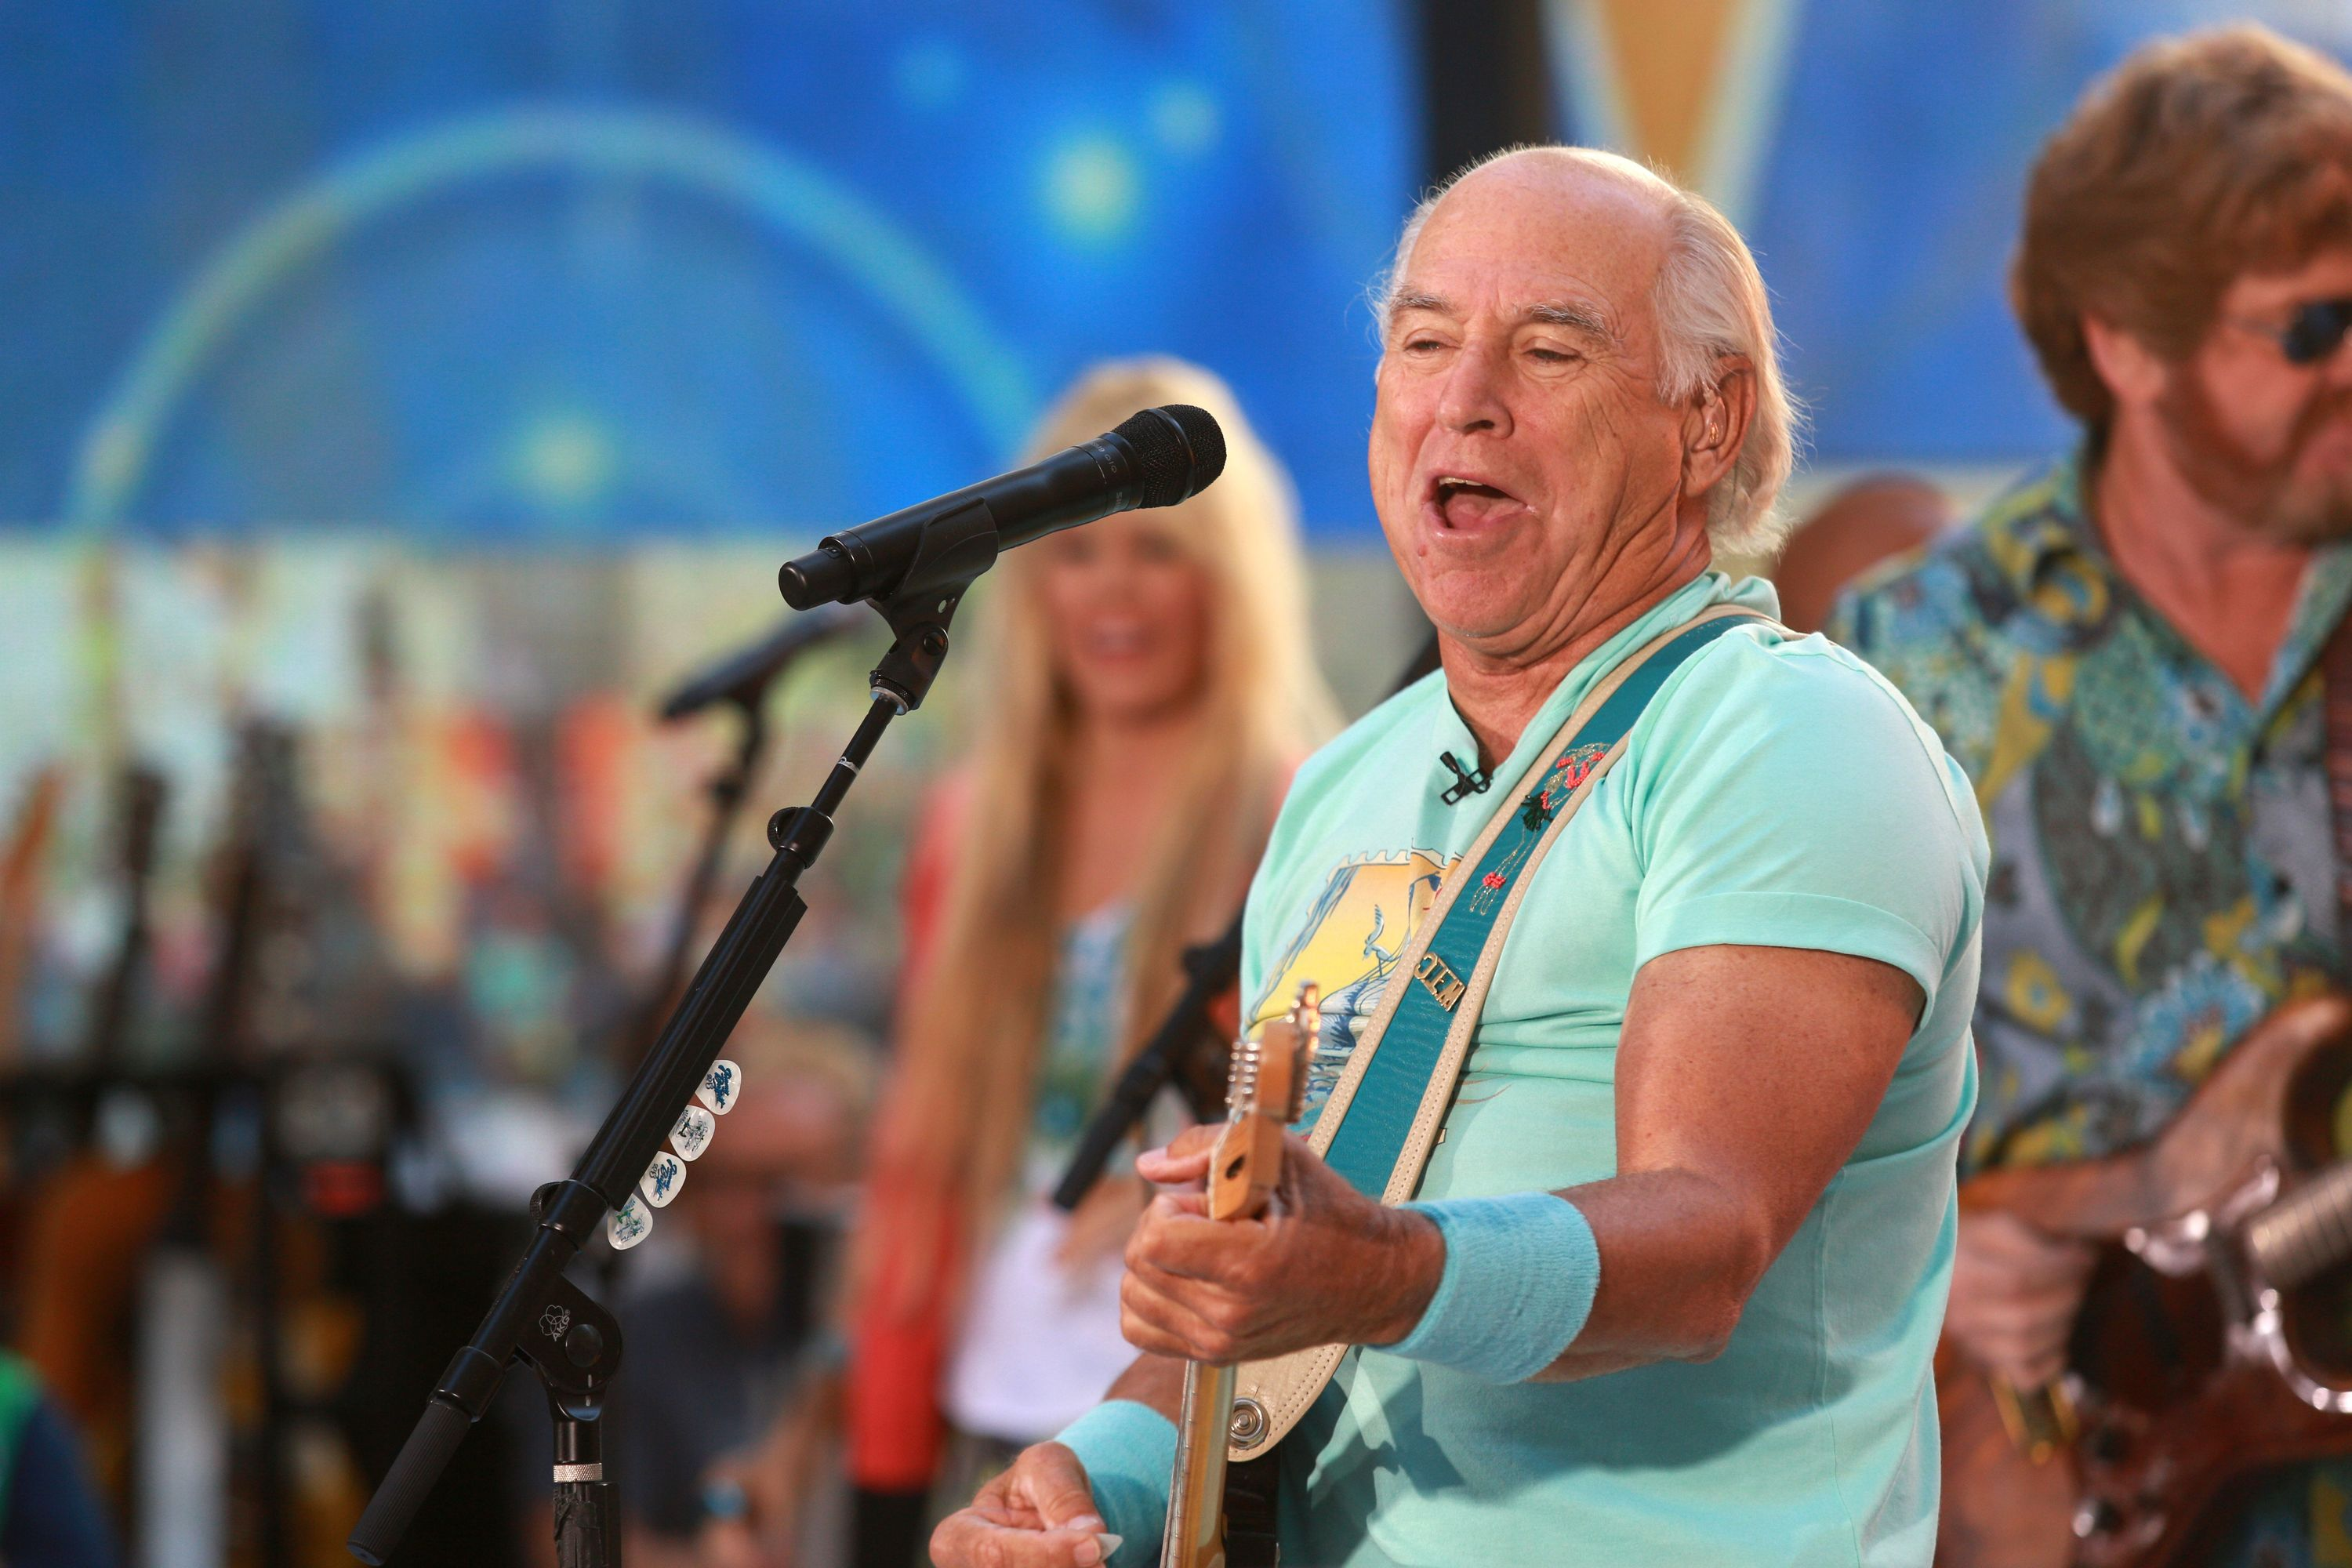 Jimmy Buffett and the Coral Reefer Band + Huey Lewis and the News